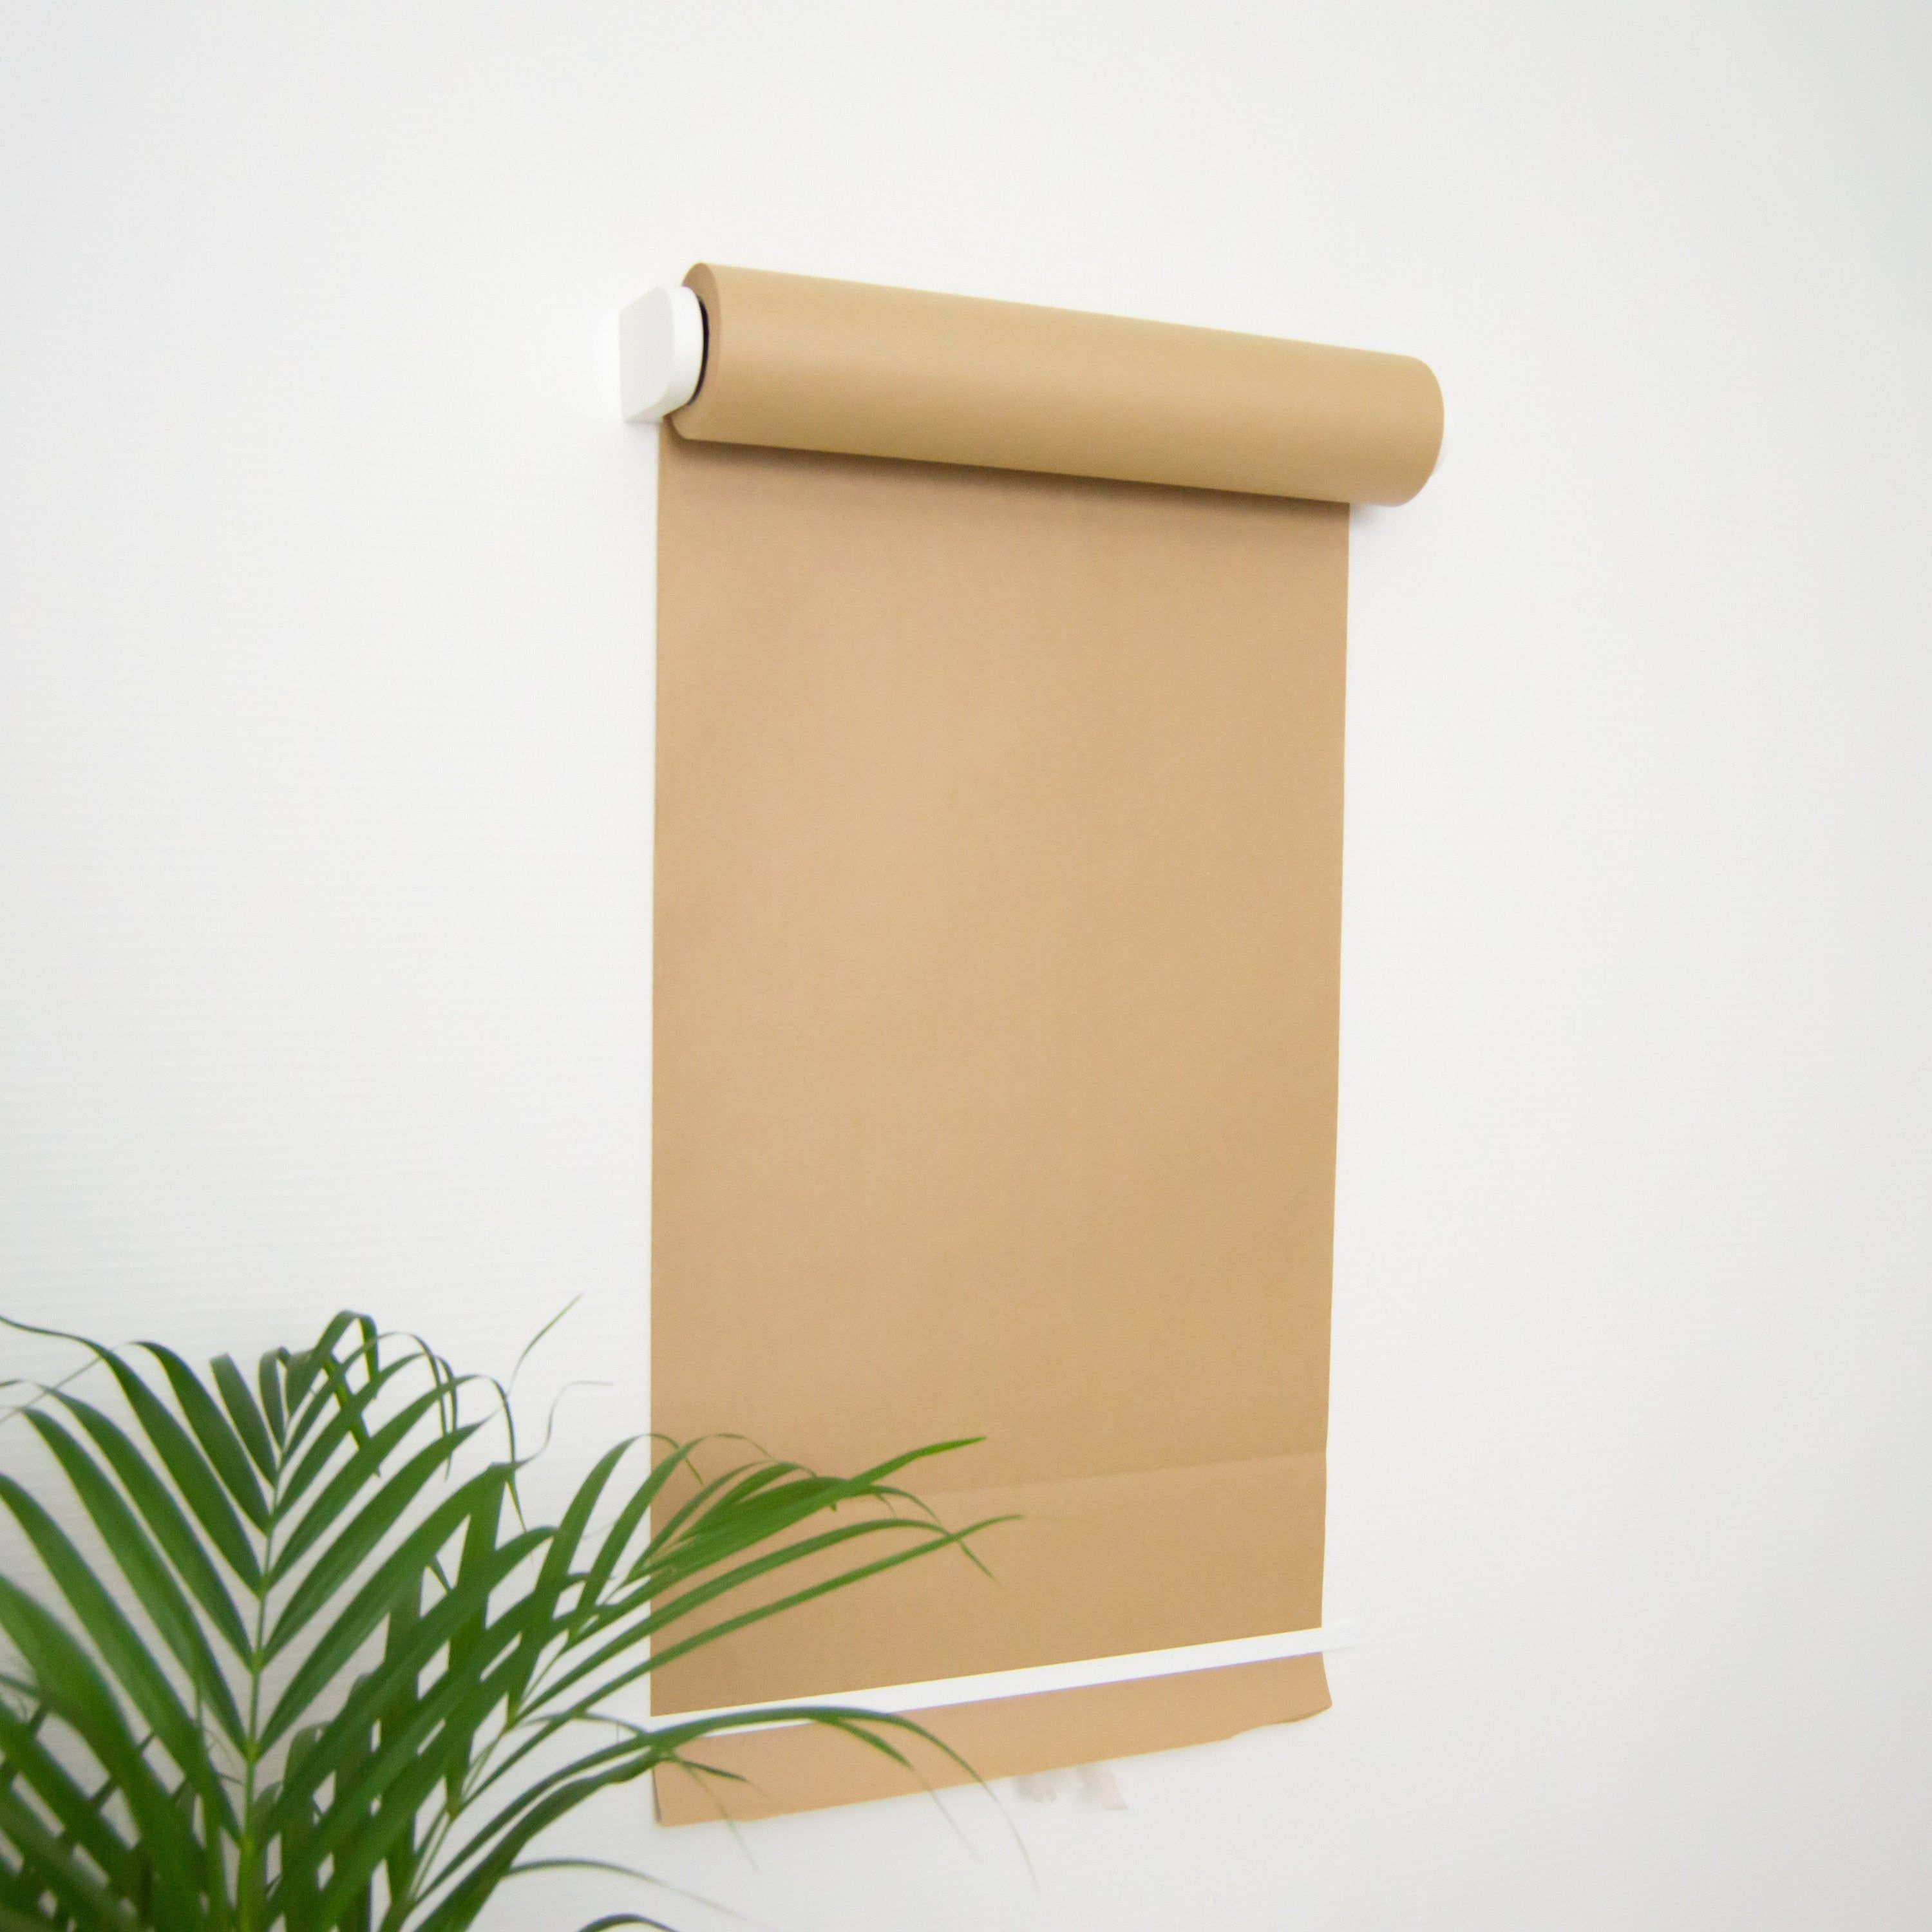 Paper Roller White Wall Mounted Paper Roller Paper Roll Etsy In 2020 Cafe Display Paper Roll Holders Paper Dispenser